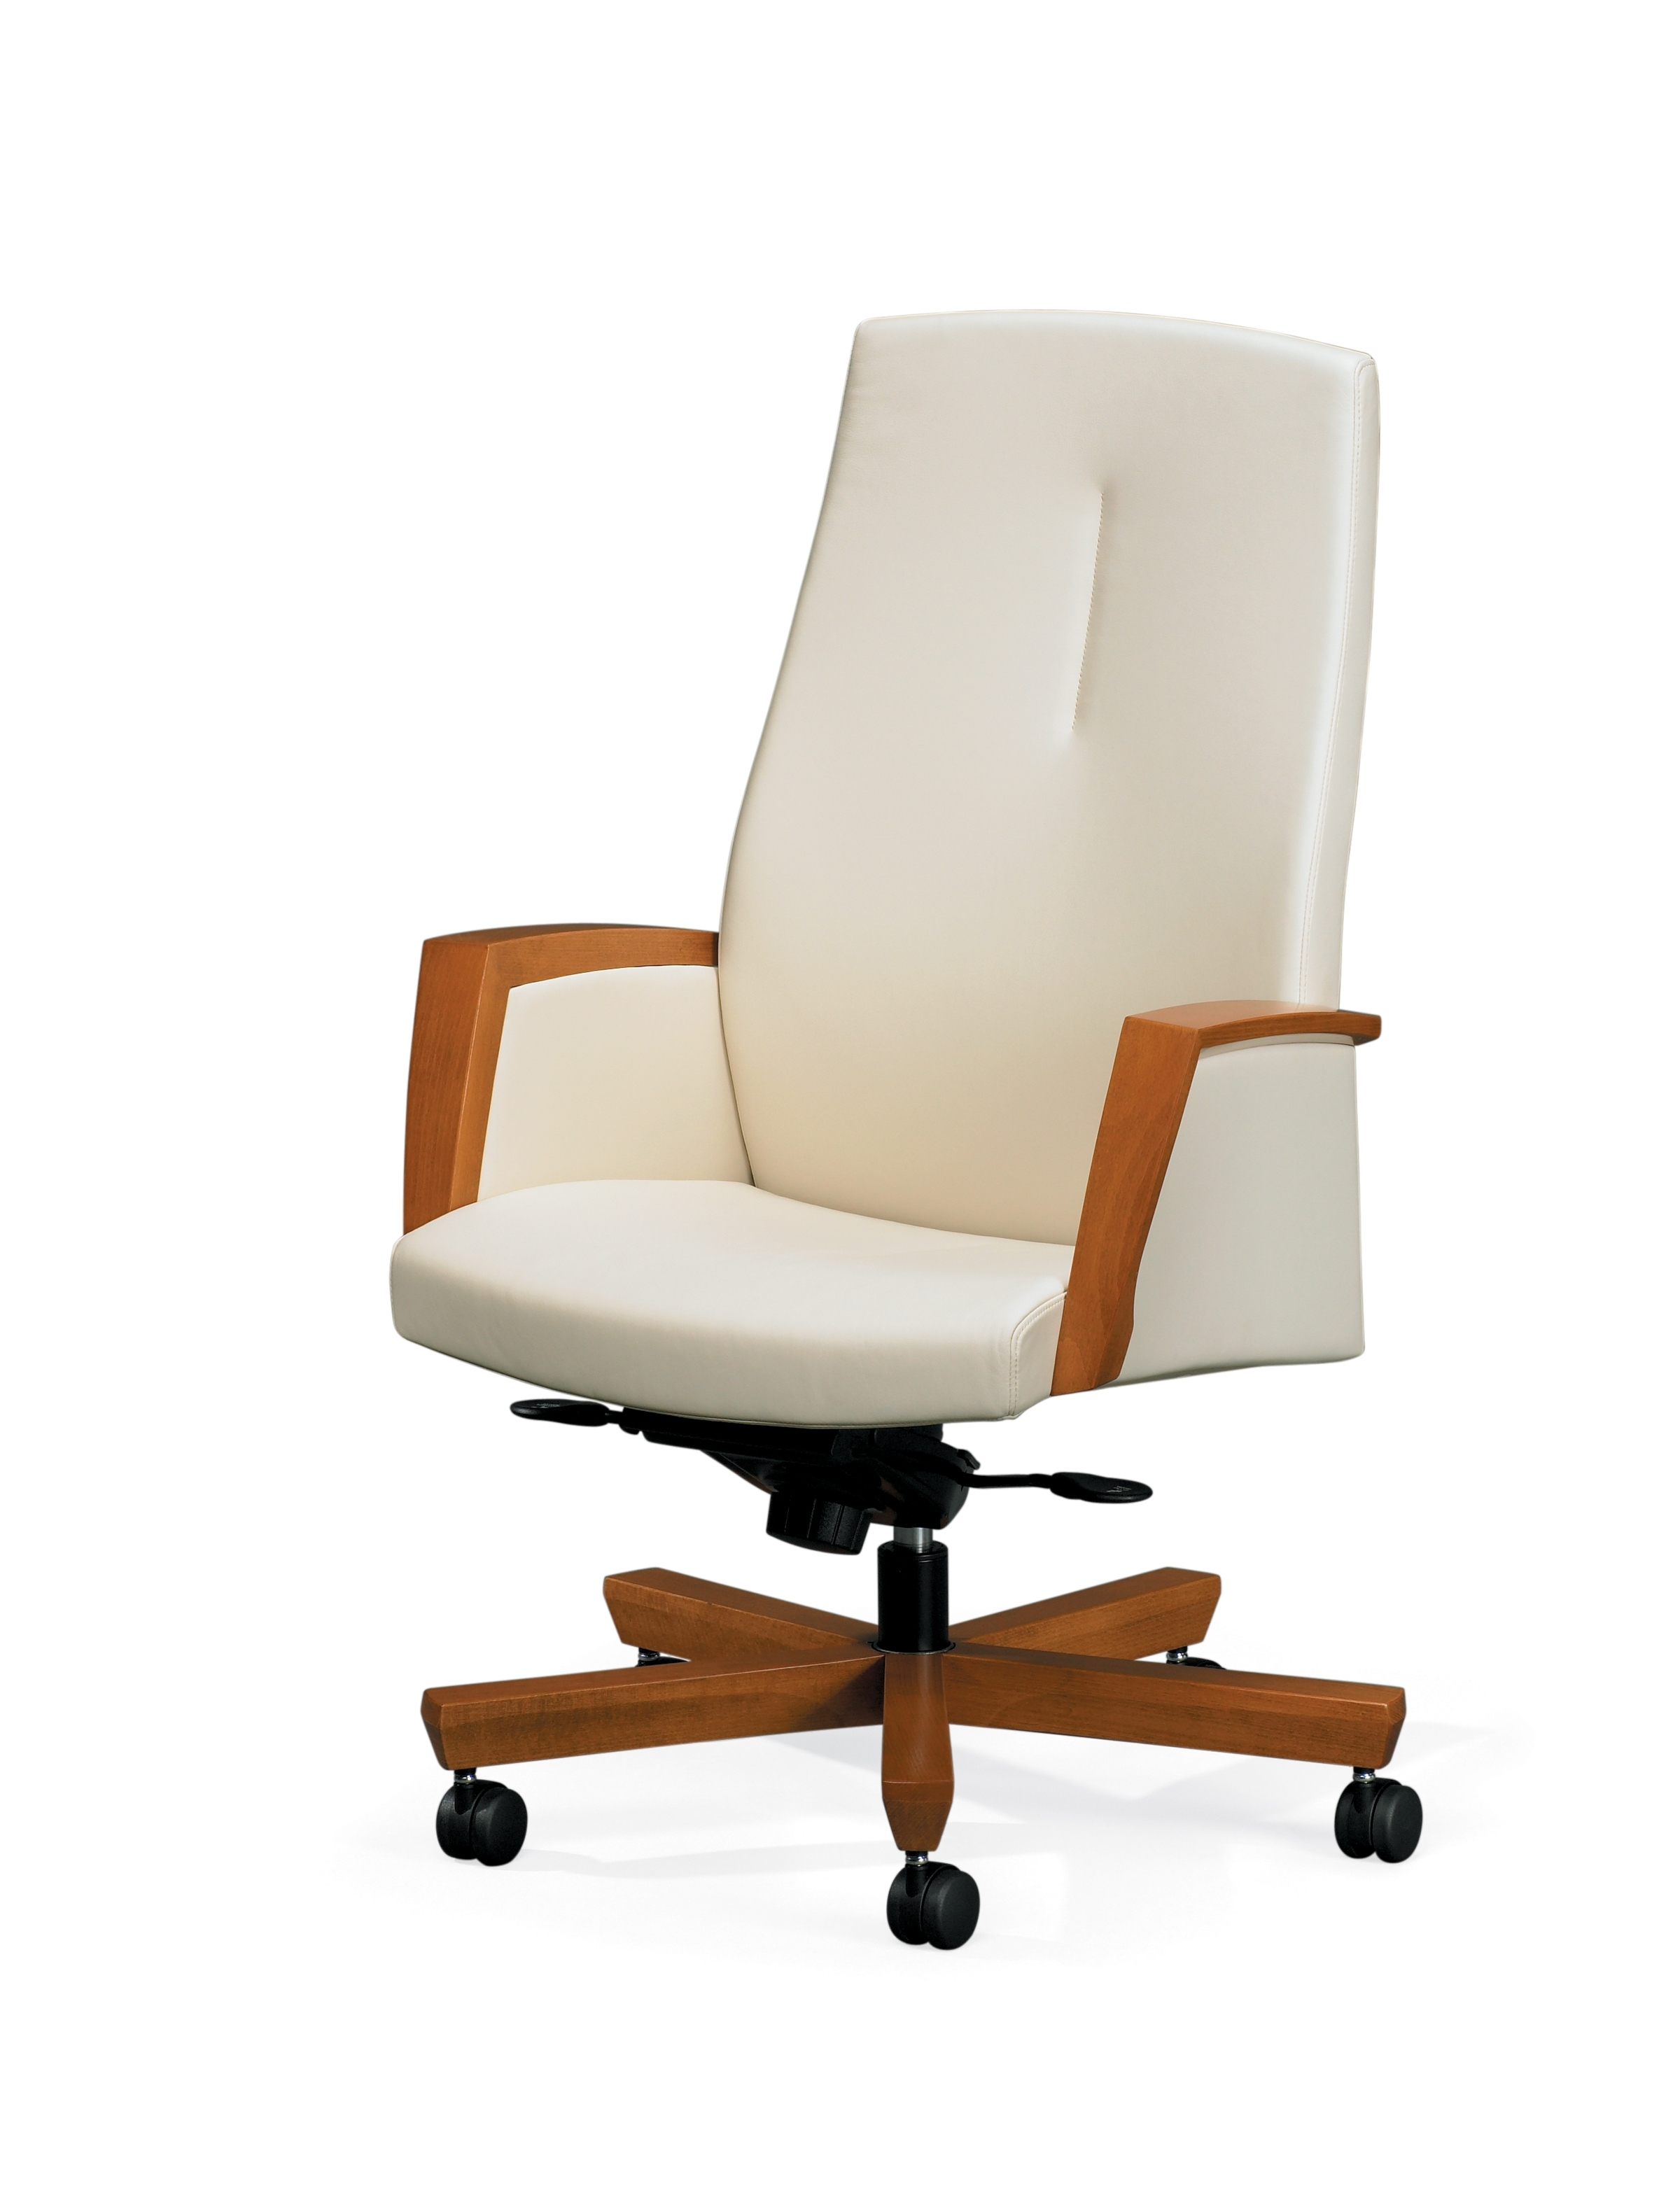 Leather Swivel Recliner Executive Office Chairs In Widely Used Paoli Diverge Office Chair – Contemporay And Transitional Seating (View 3 of 20)